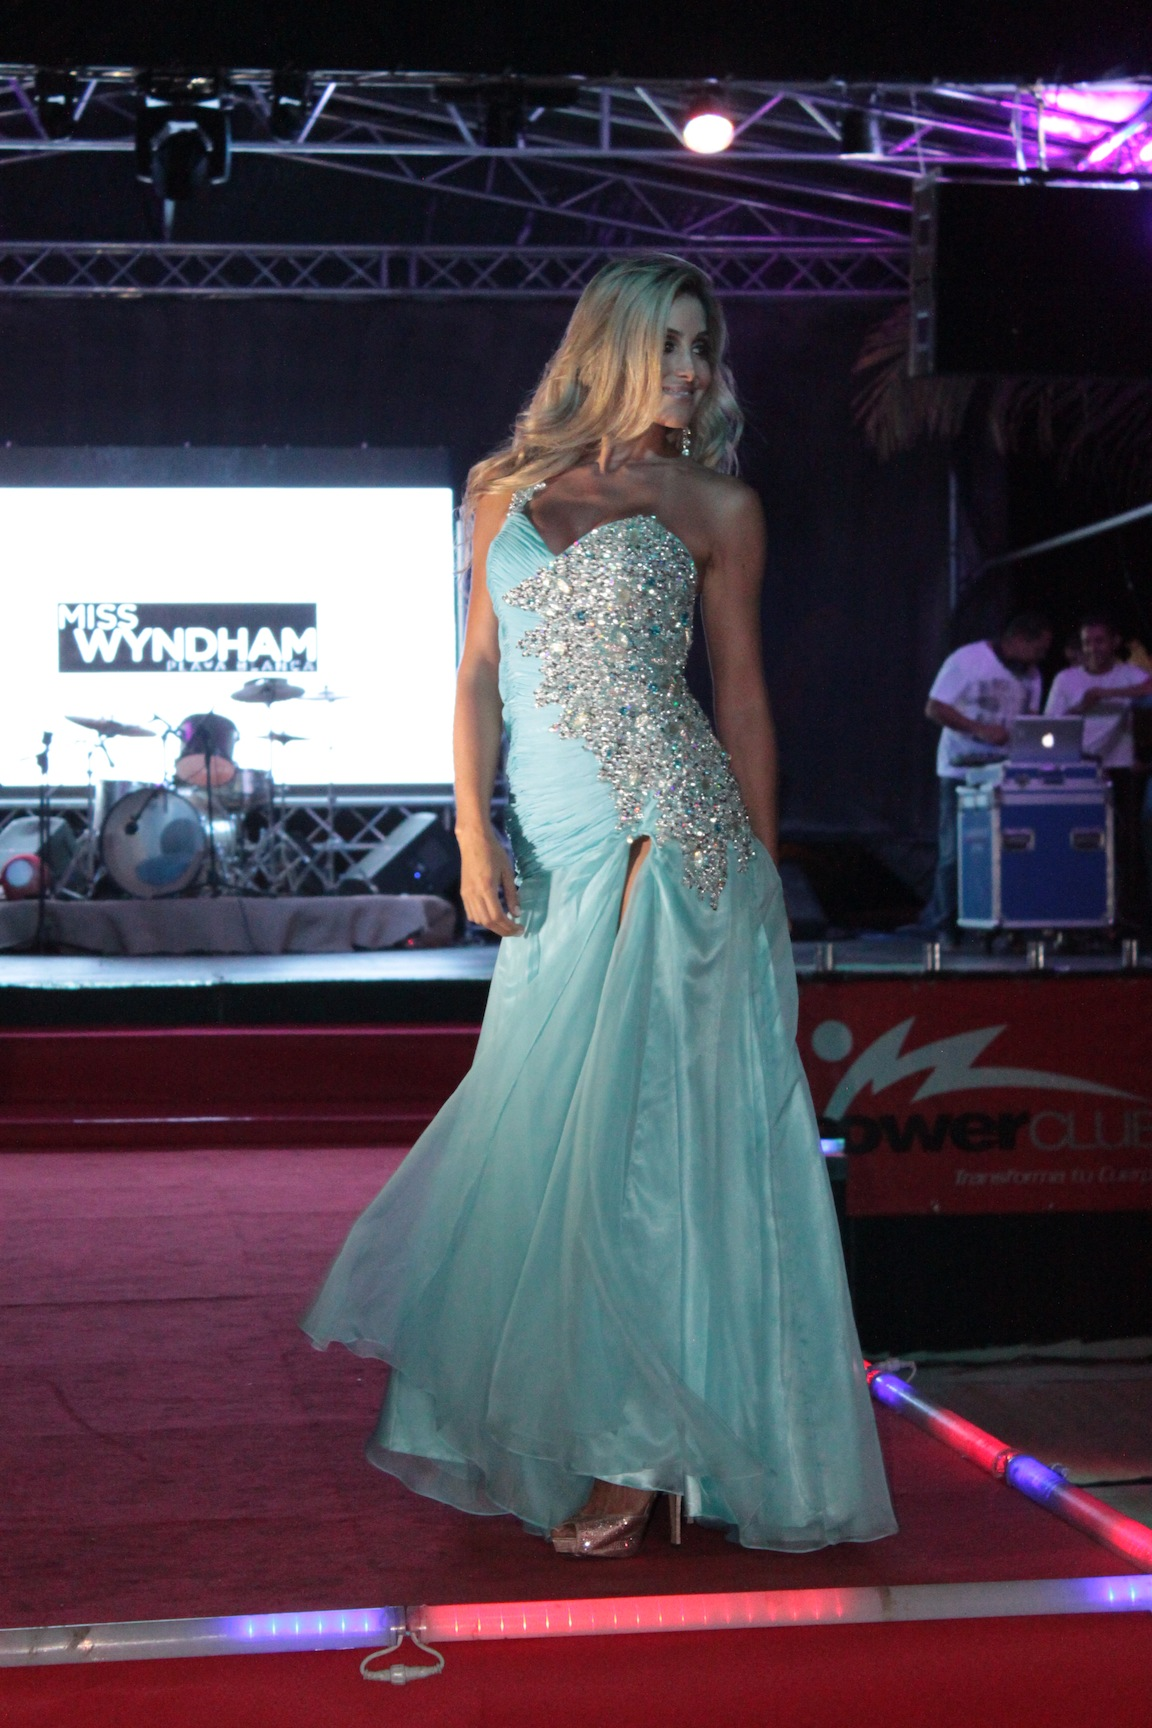 FINAL MISS WINDHAM